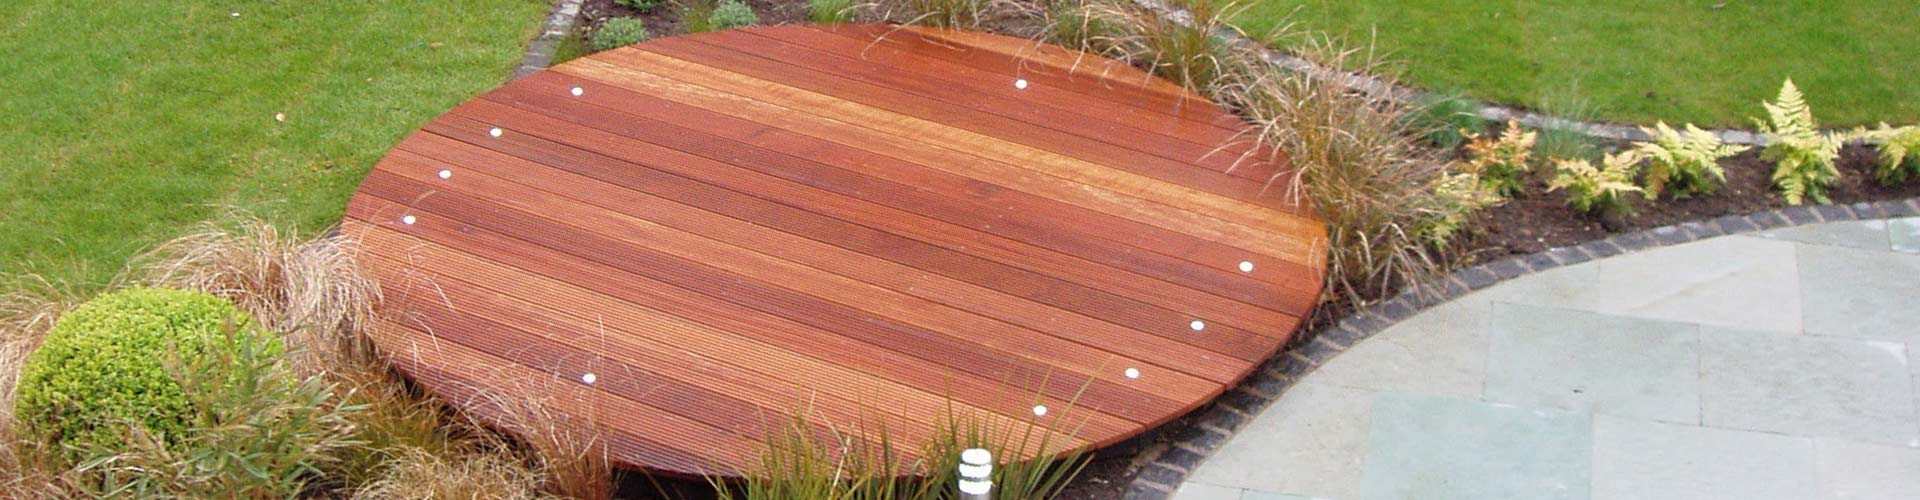 Decking - Wood Components